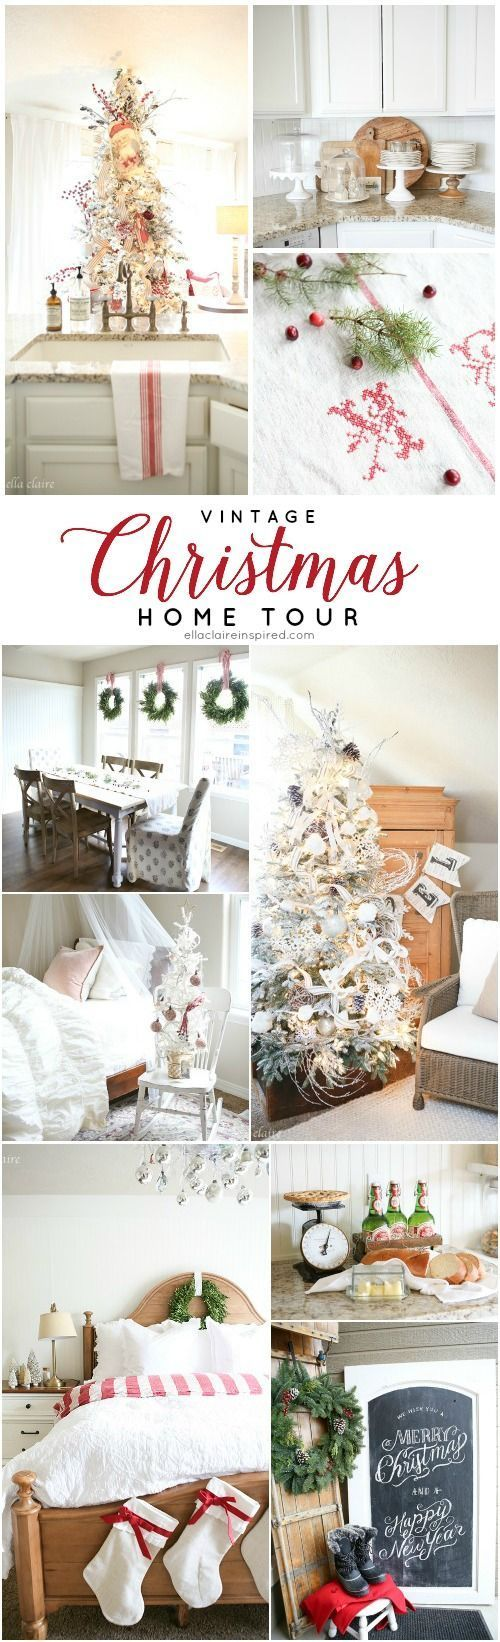 465 best Christmas homes images on Pinterest | Christmas decor ...